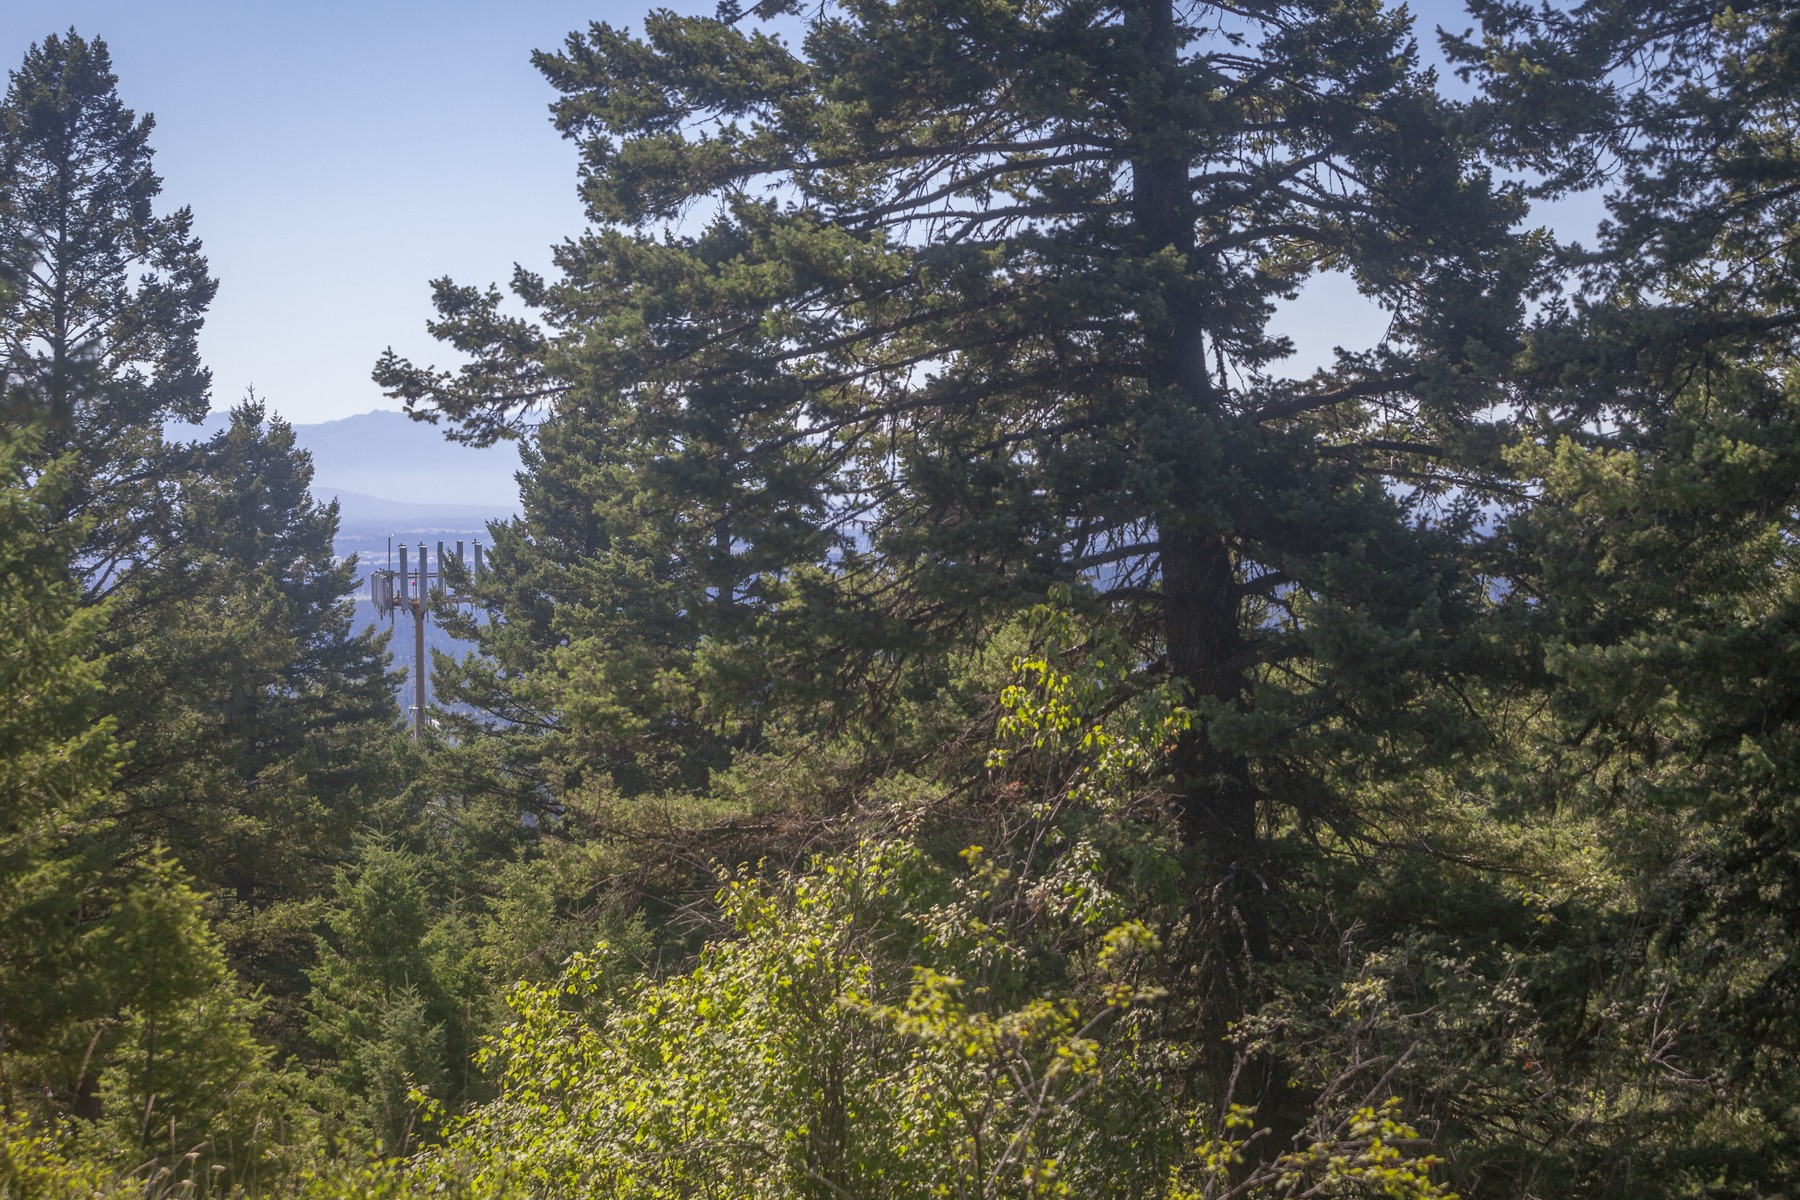 Land for Sale at Nhn Wolf Tail Pines Rd , Whitefish, MT 59937 Nhn Wolf Tail Pines Rd Whitefish, Montana 59937 United States